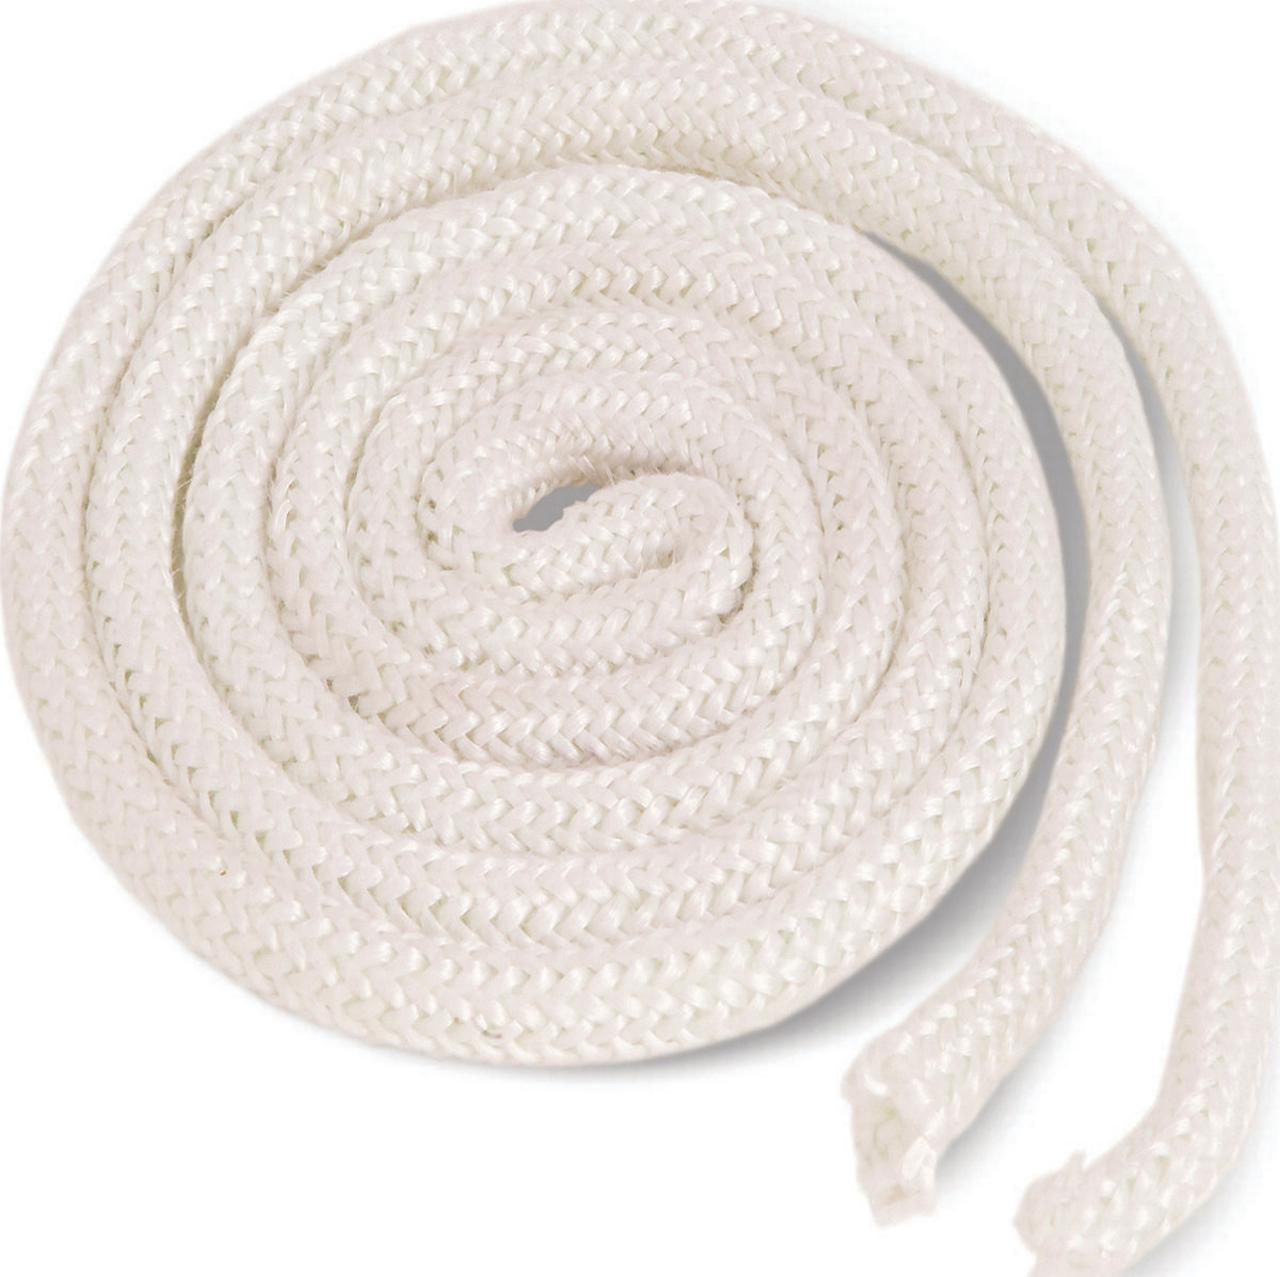 Imperial GA0153 Braided Gasket Rope, 1/4 in Dia x 6 ft L